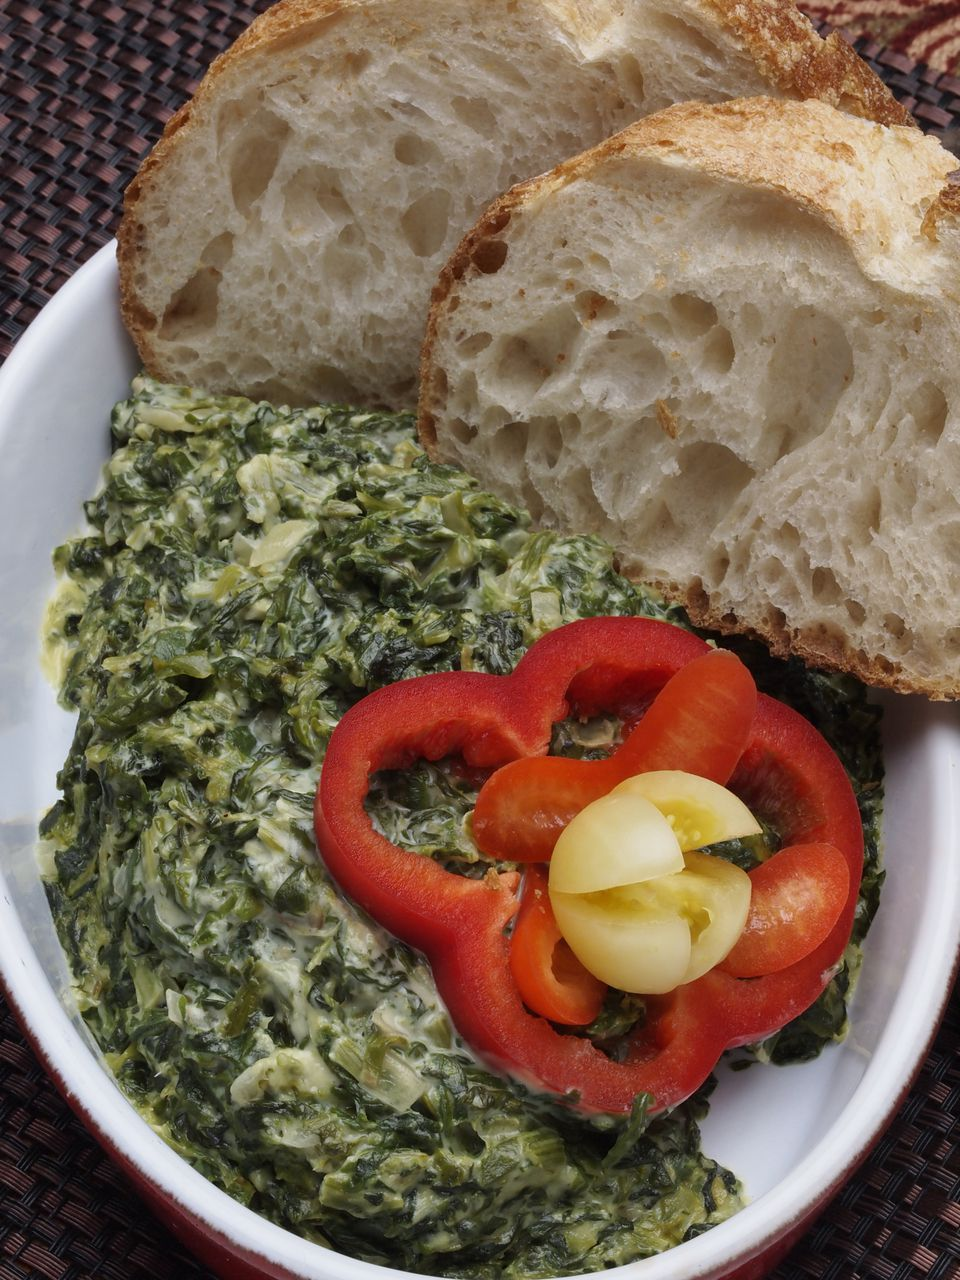 Creamed Spinach with hearth Bread